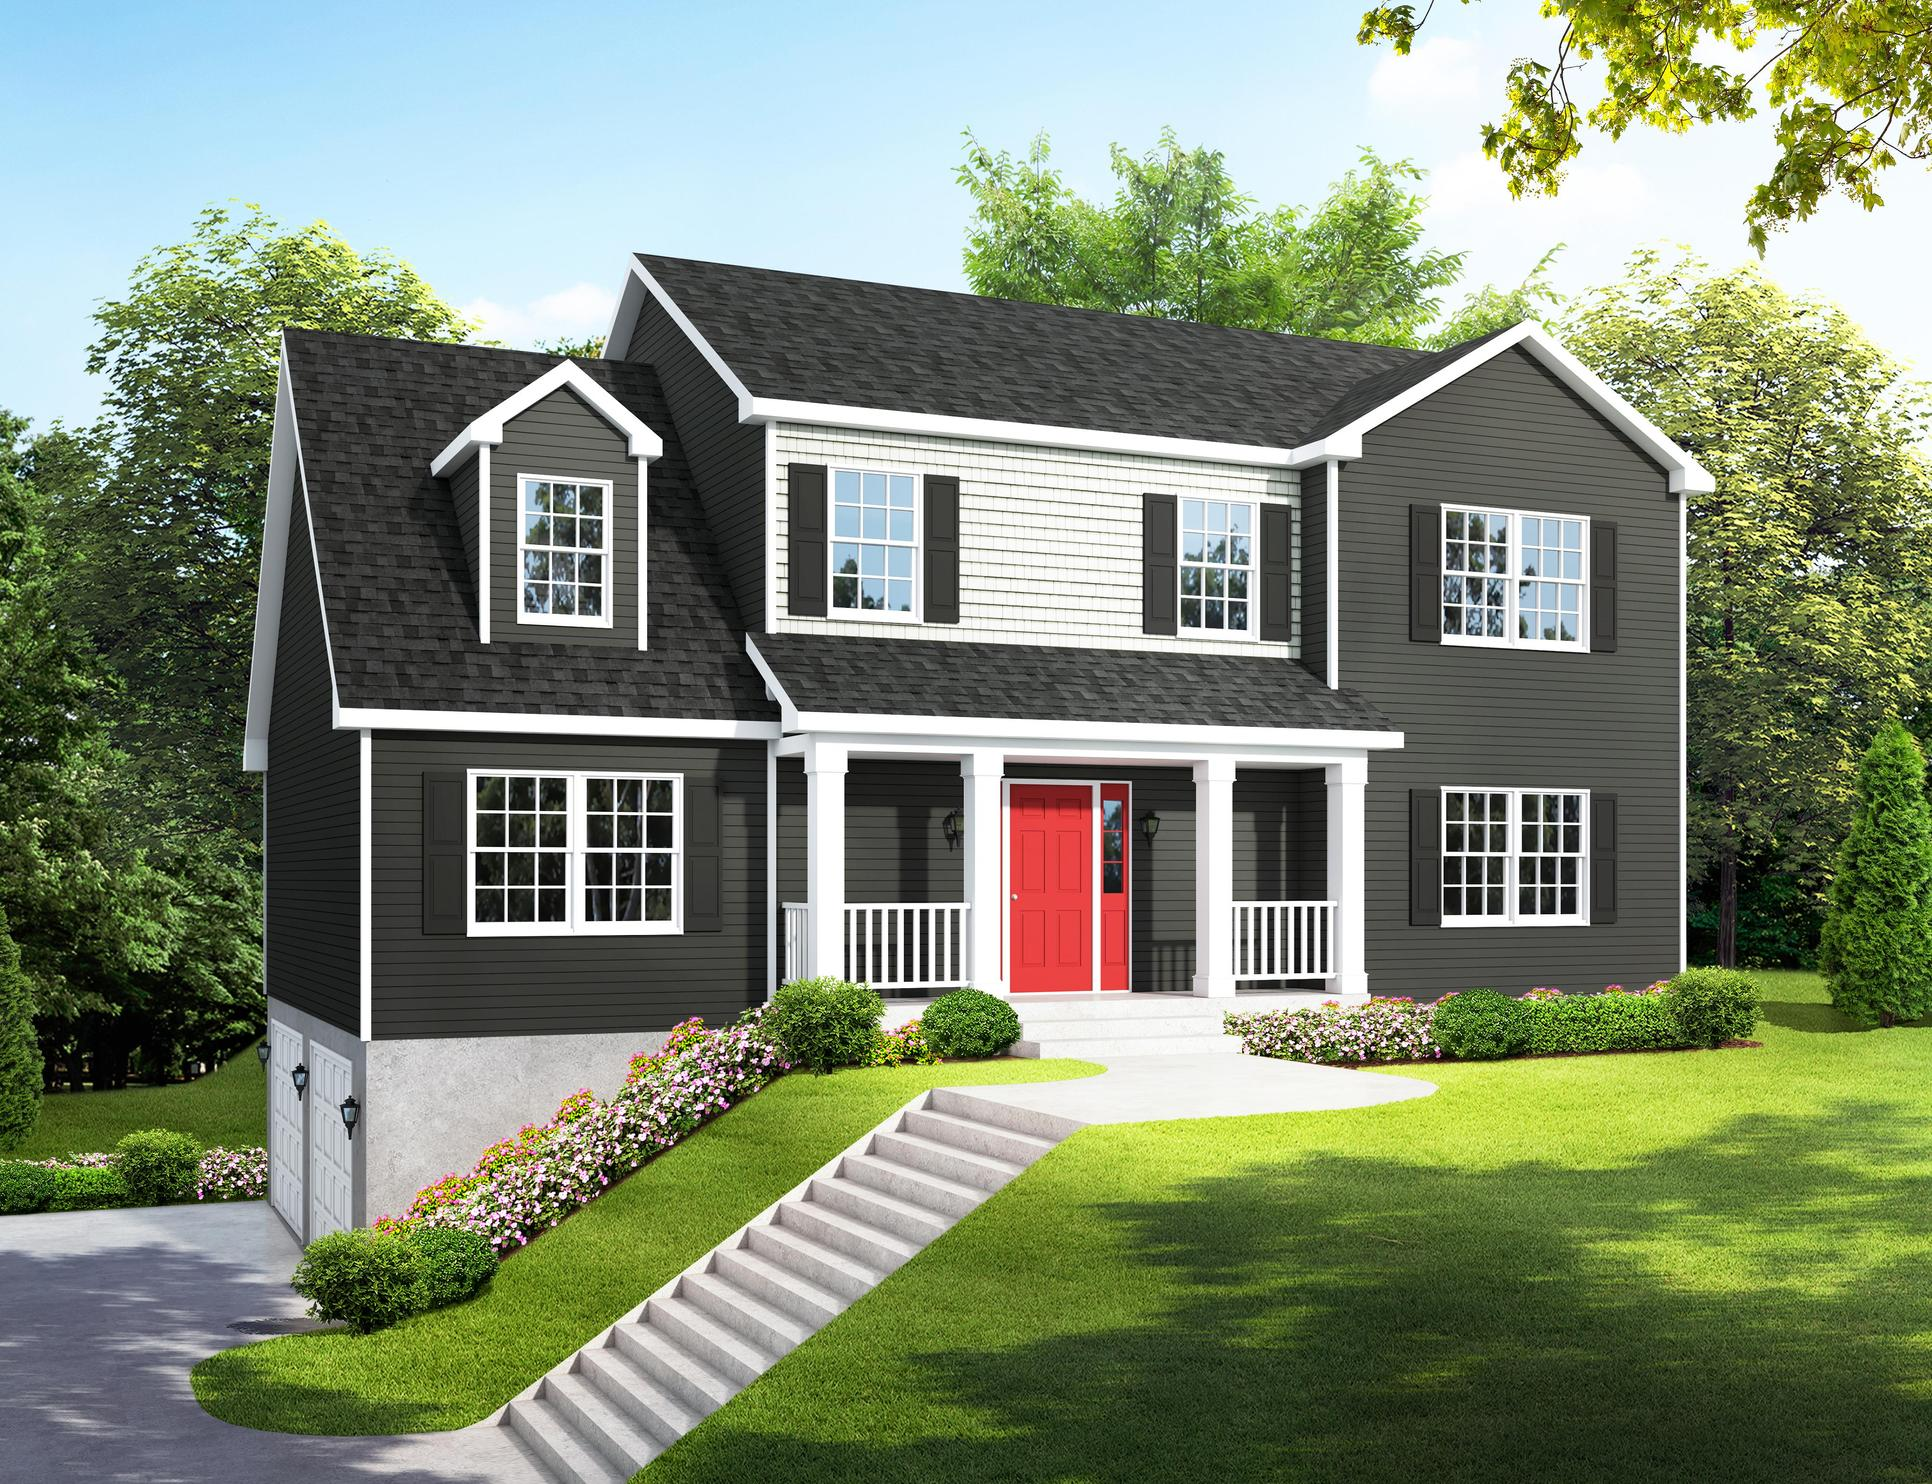 Bald Eagle Hills:Two-Story Home